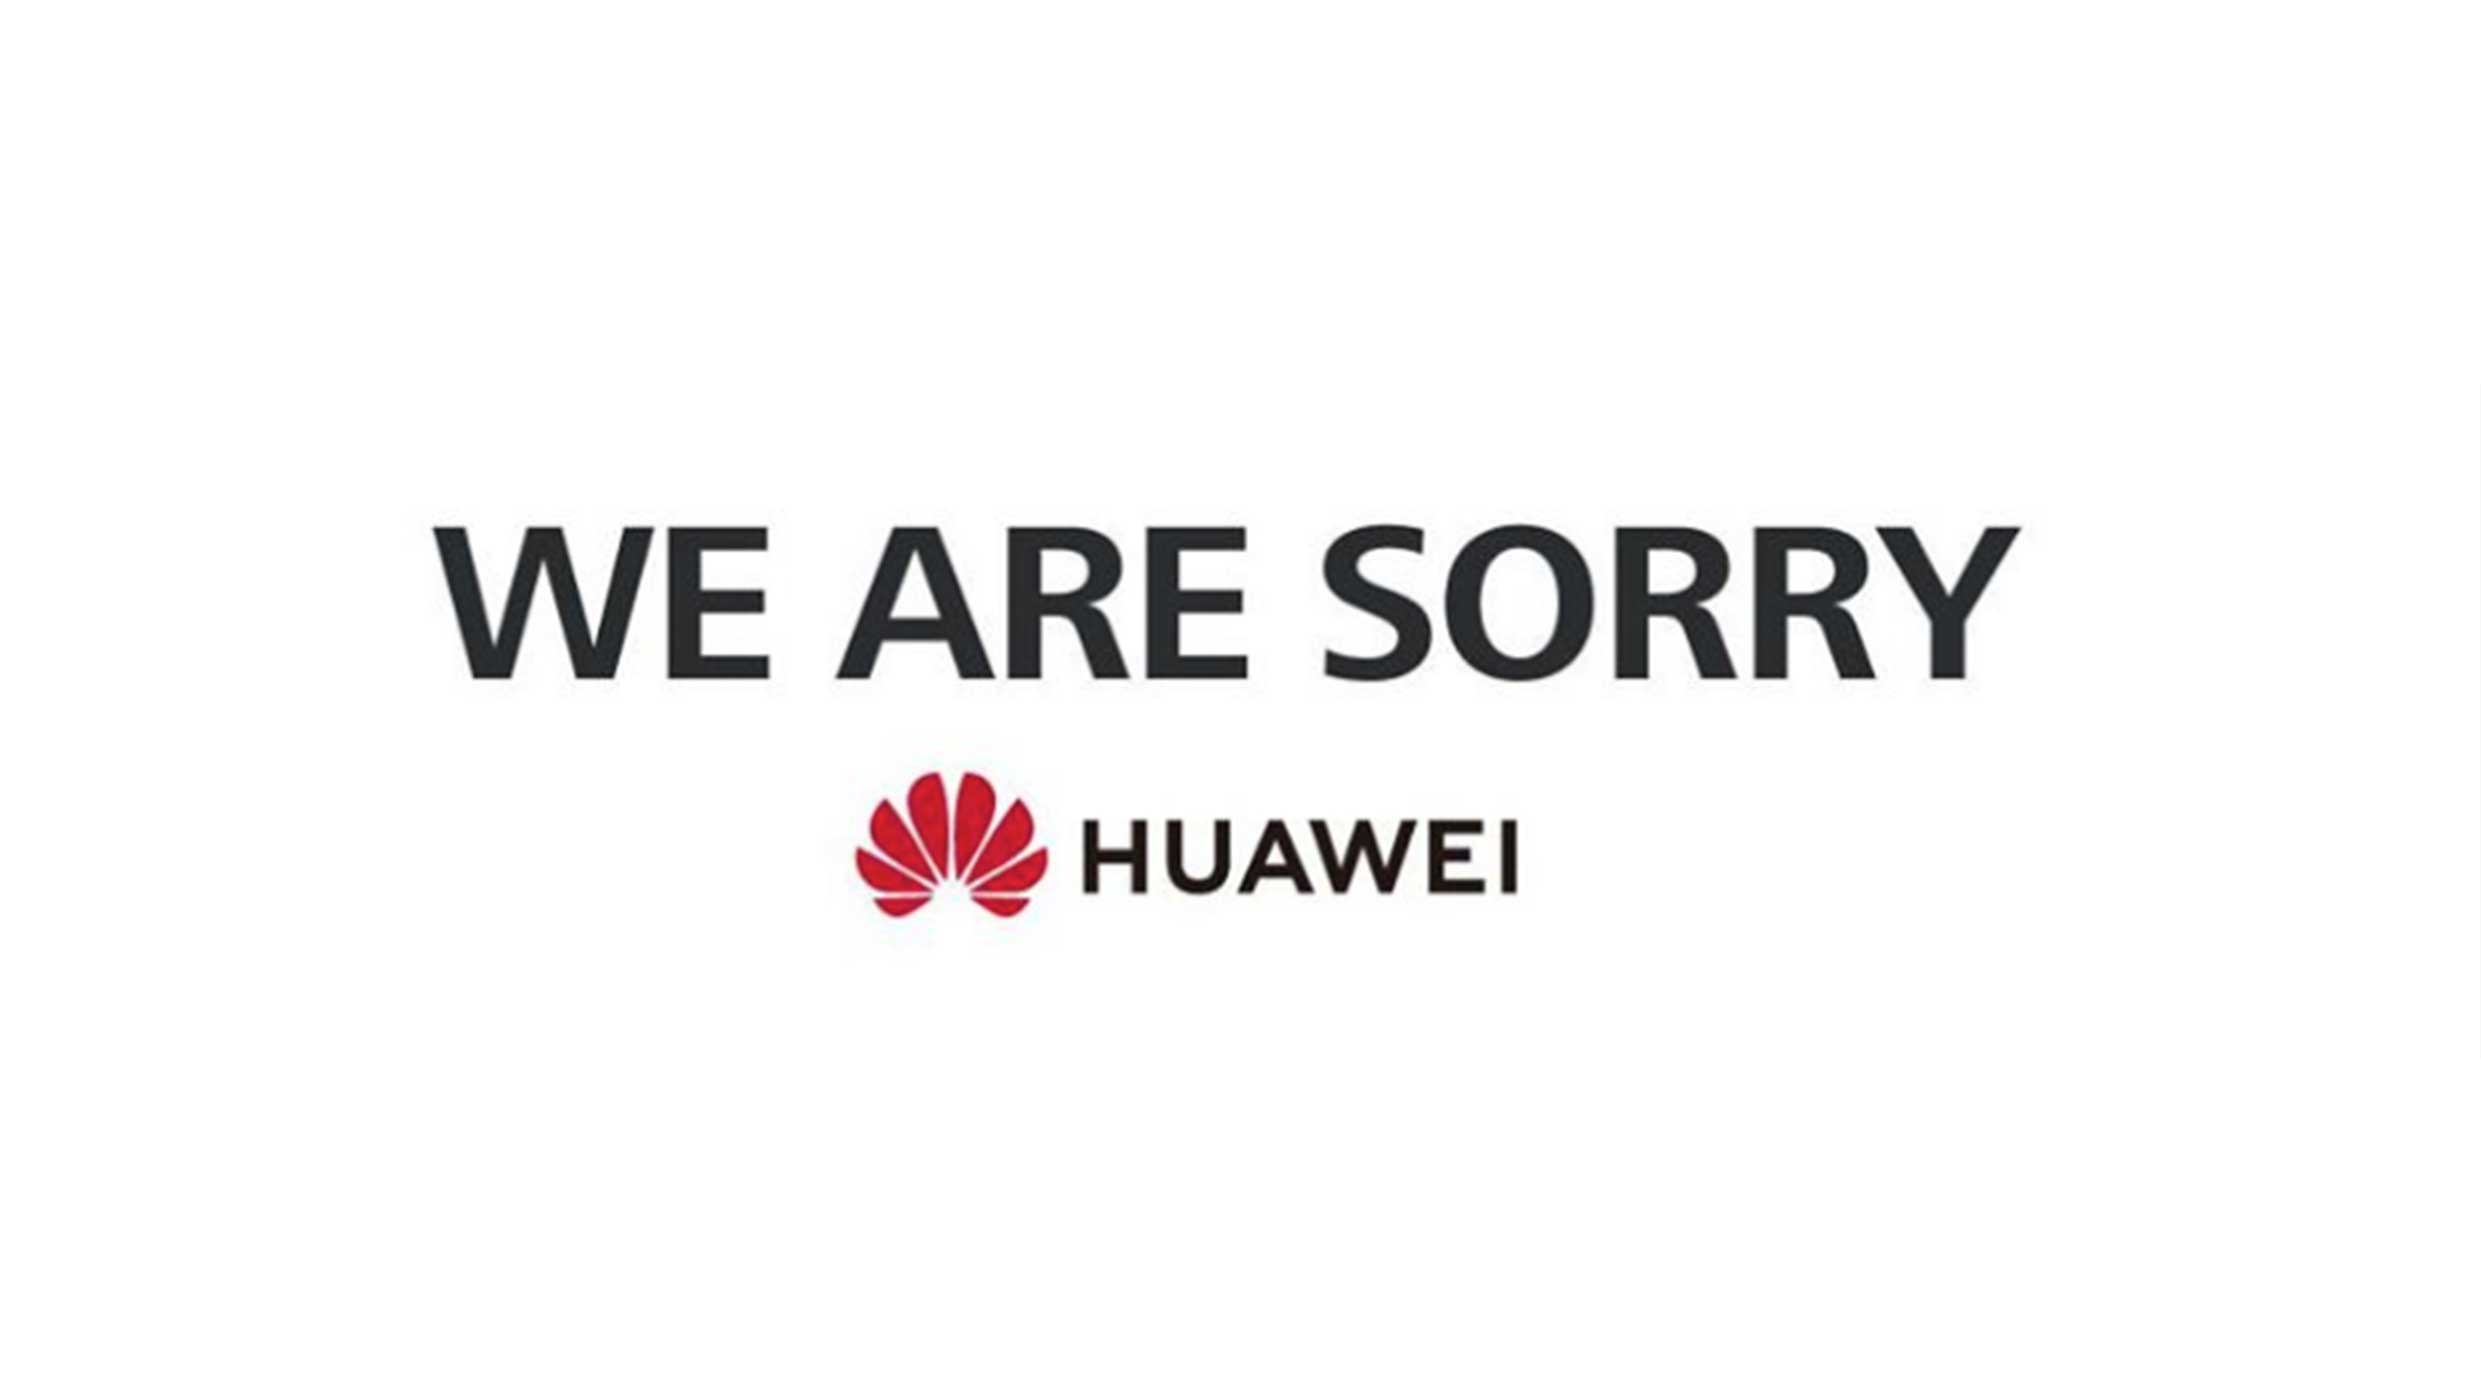 Huawei says sorry to Singapore with a half-a-million-dollar apology - Alvinology